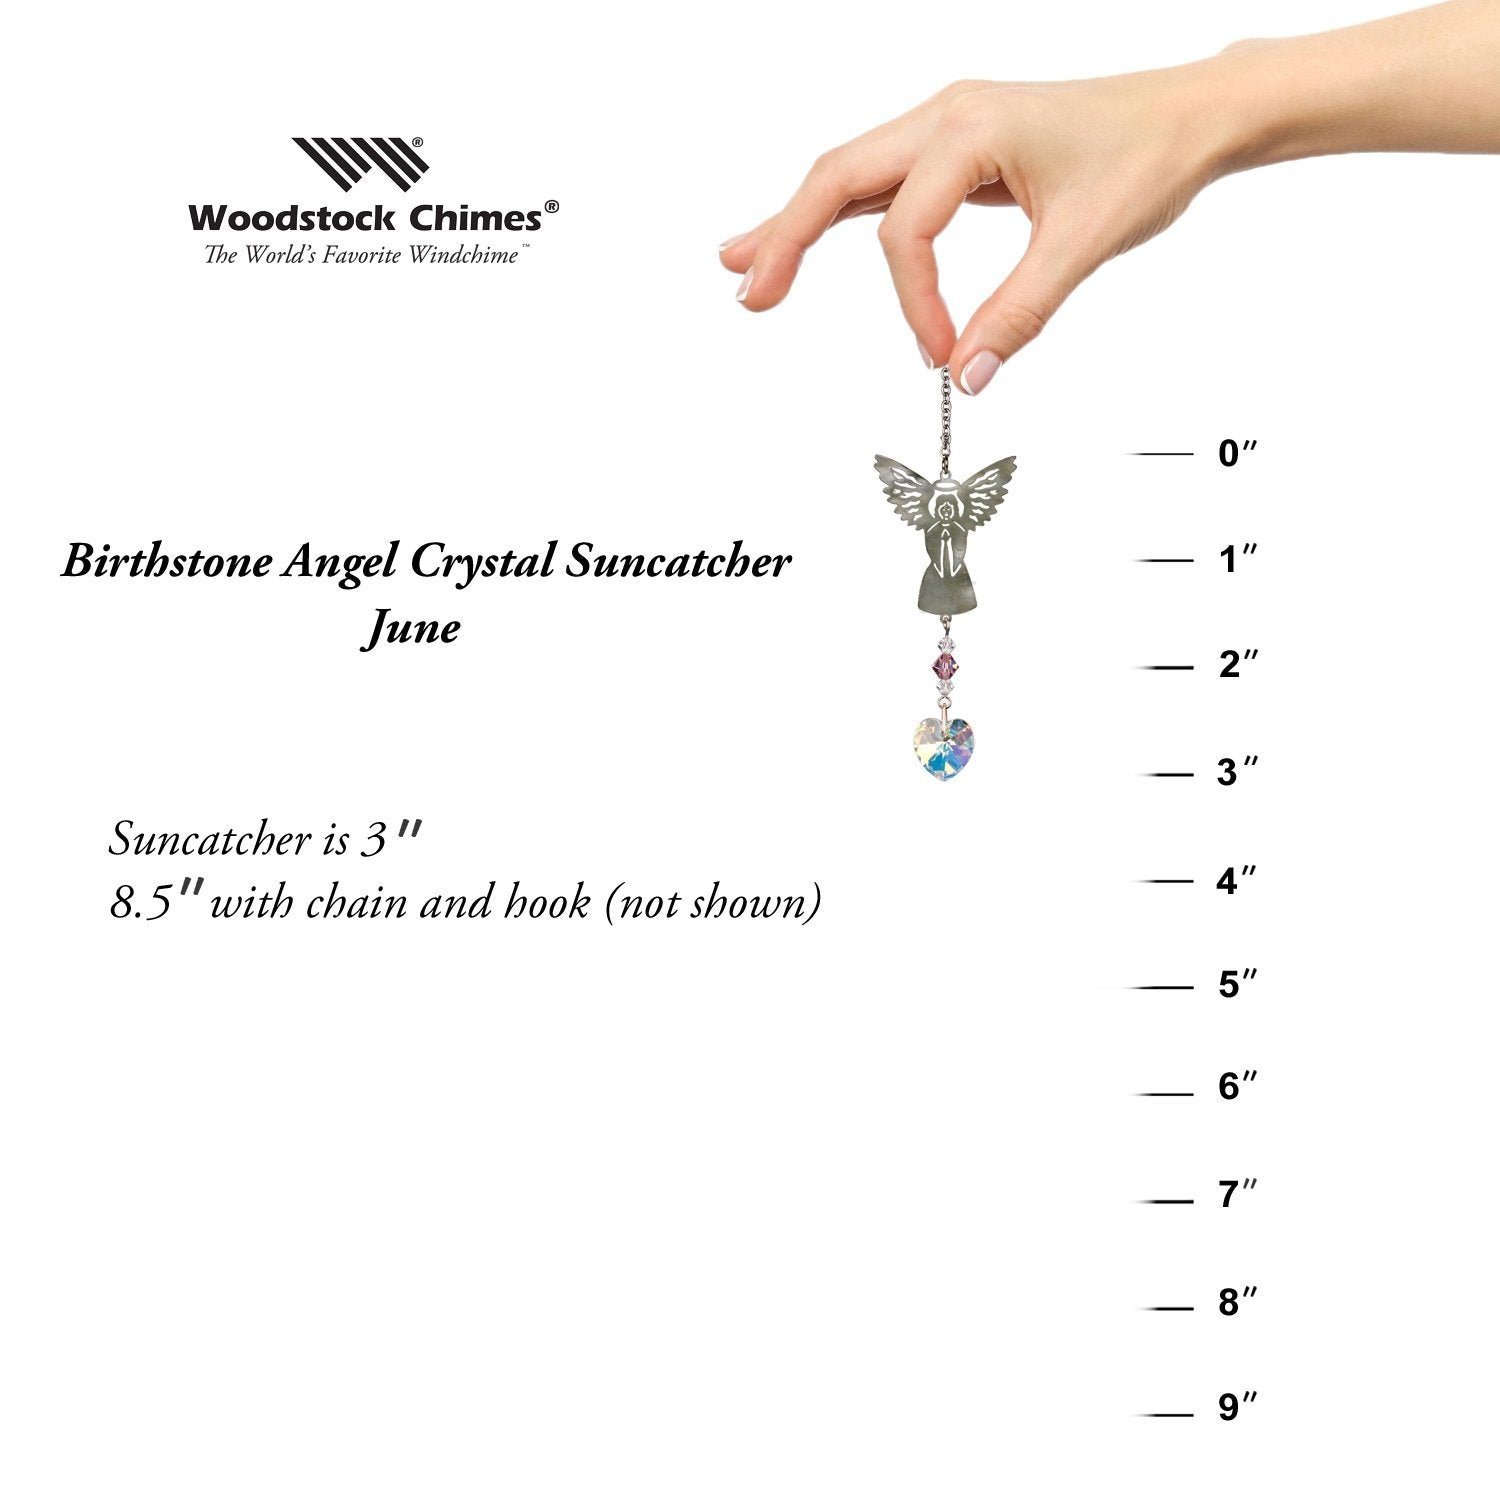 Birthstone Angel Crystal Suncatcher - June proportion image